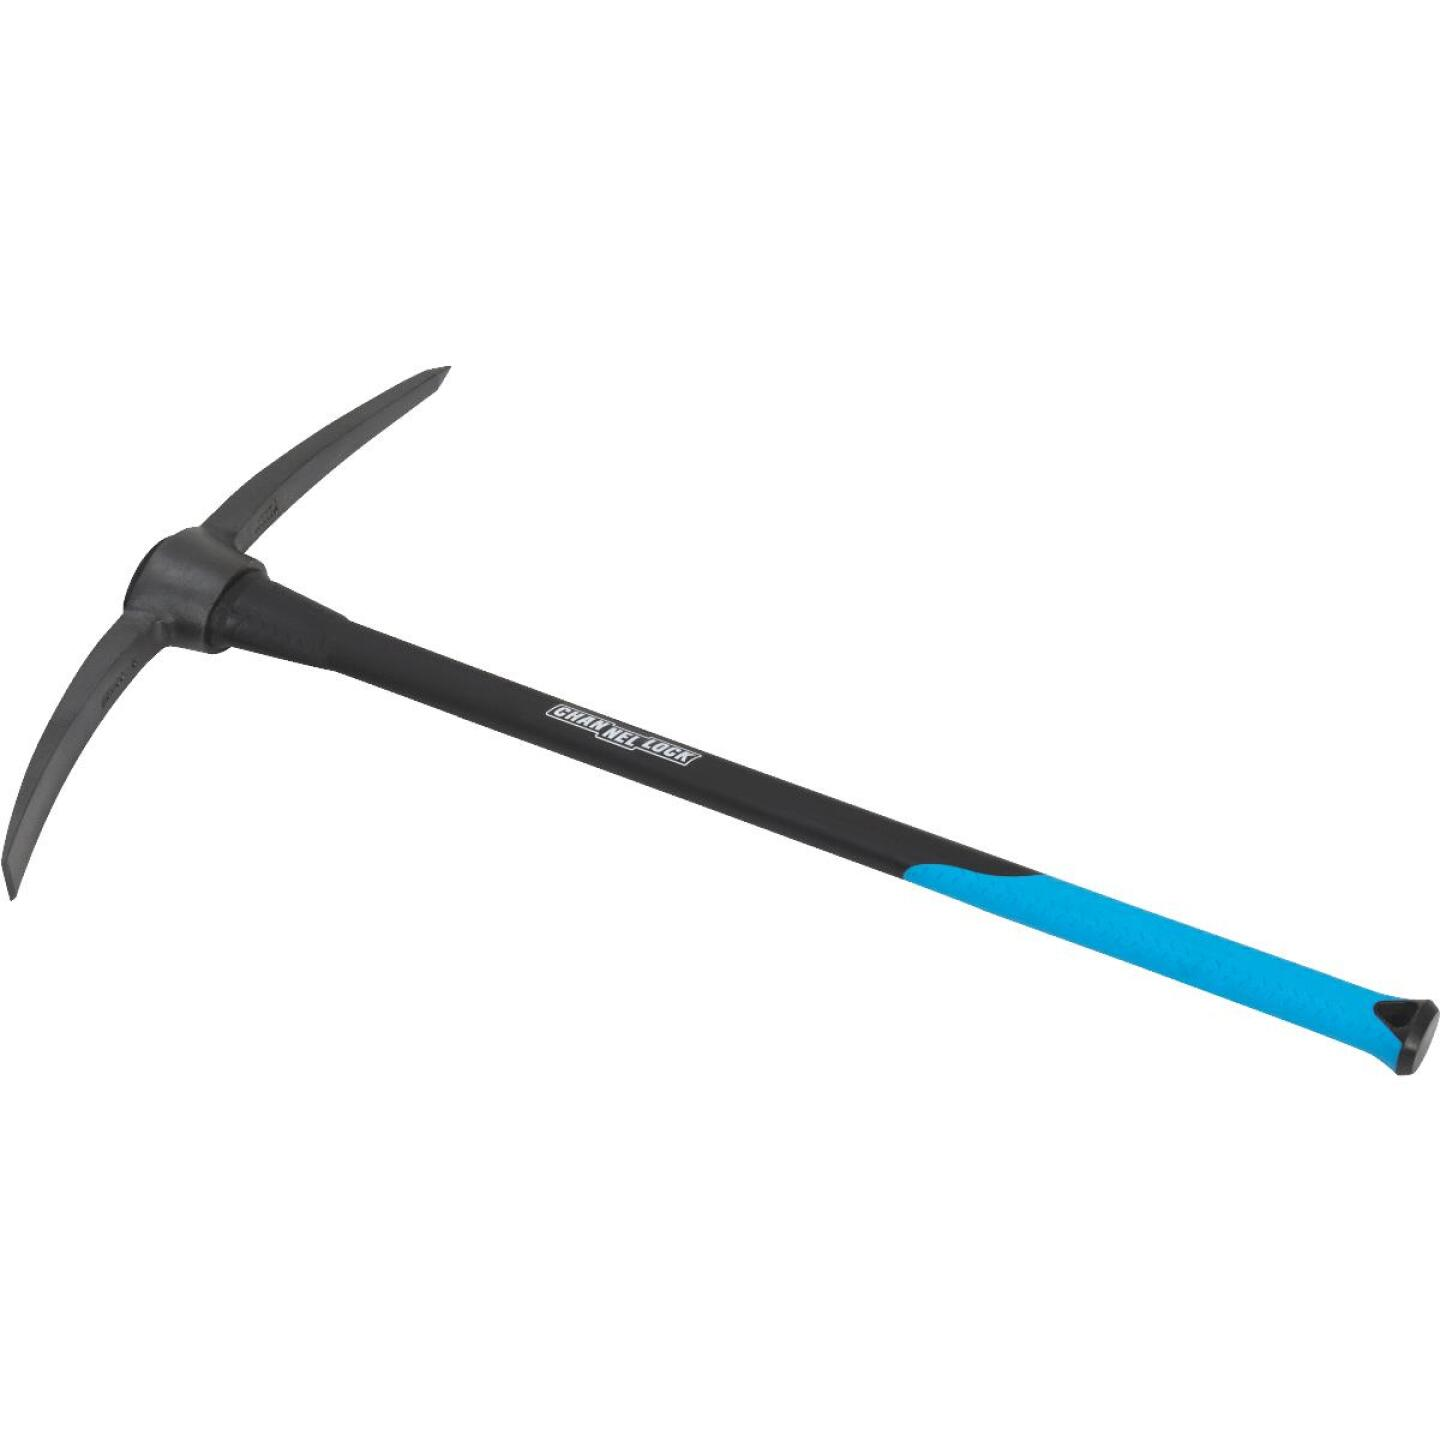 Channellock 6 Lb. Steel 22 In. Clay Pick Image 1